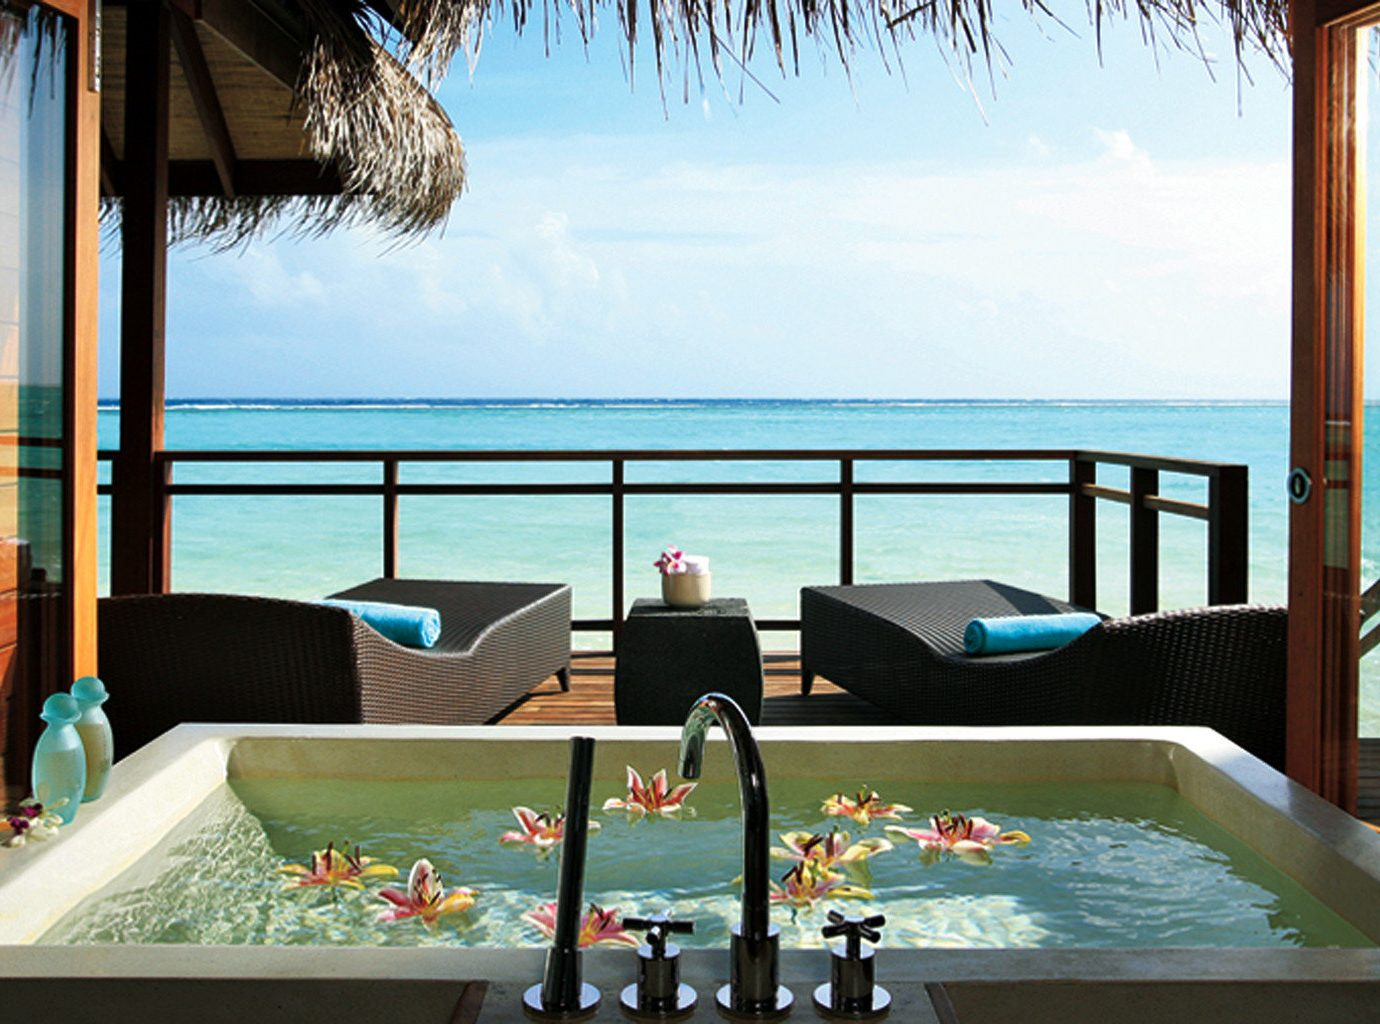 Outdoor bathtub at LUX* South Ari Atoll